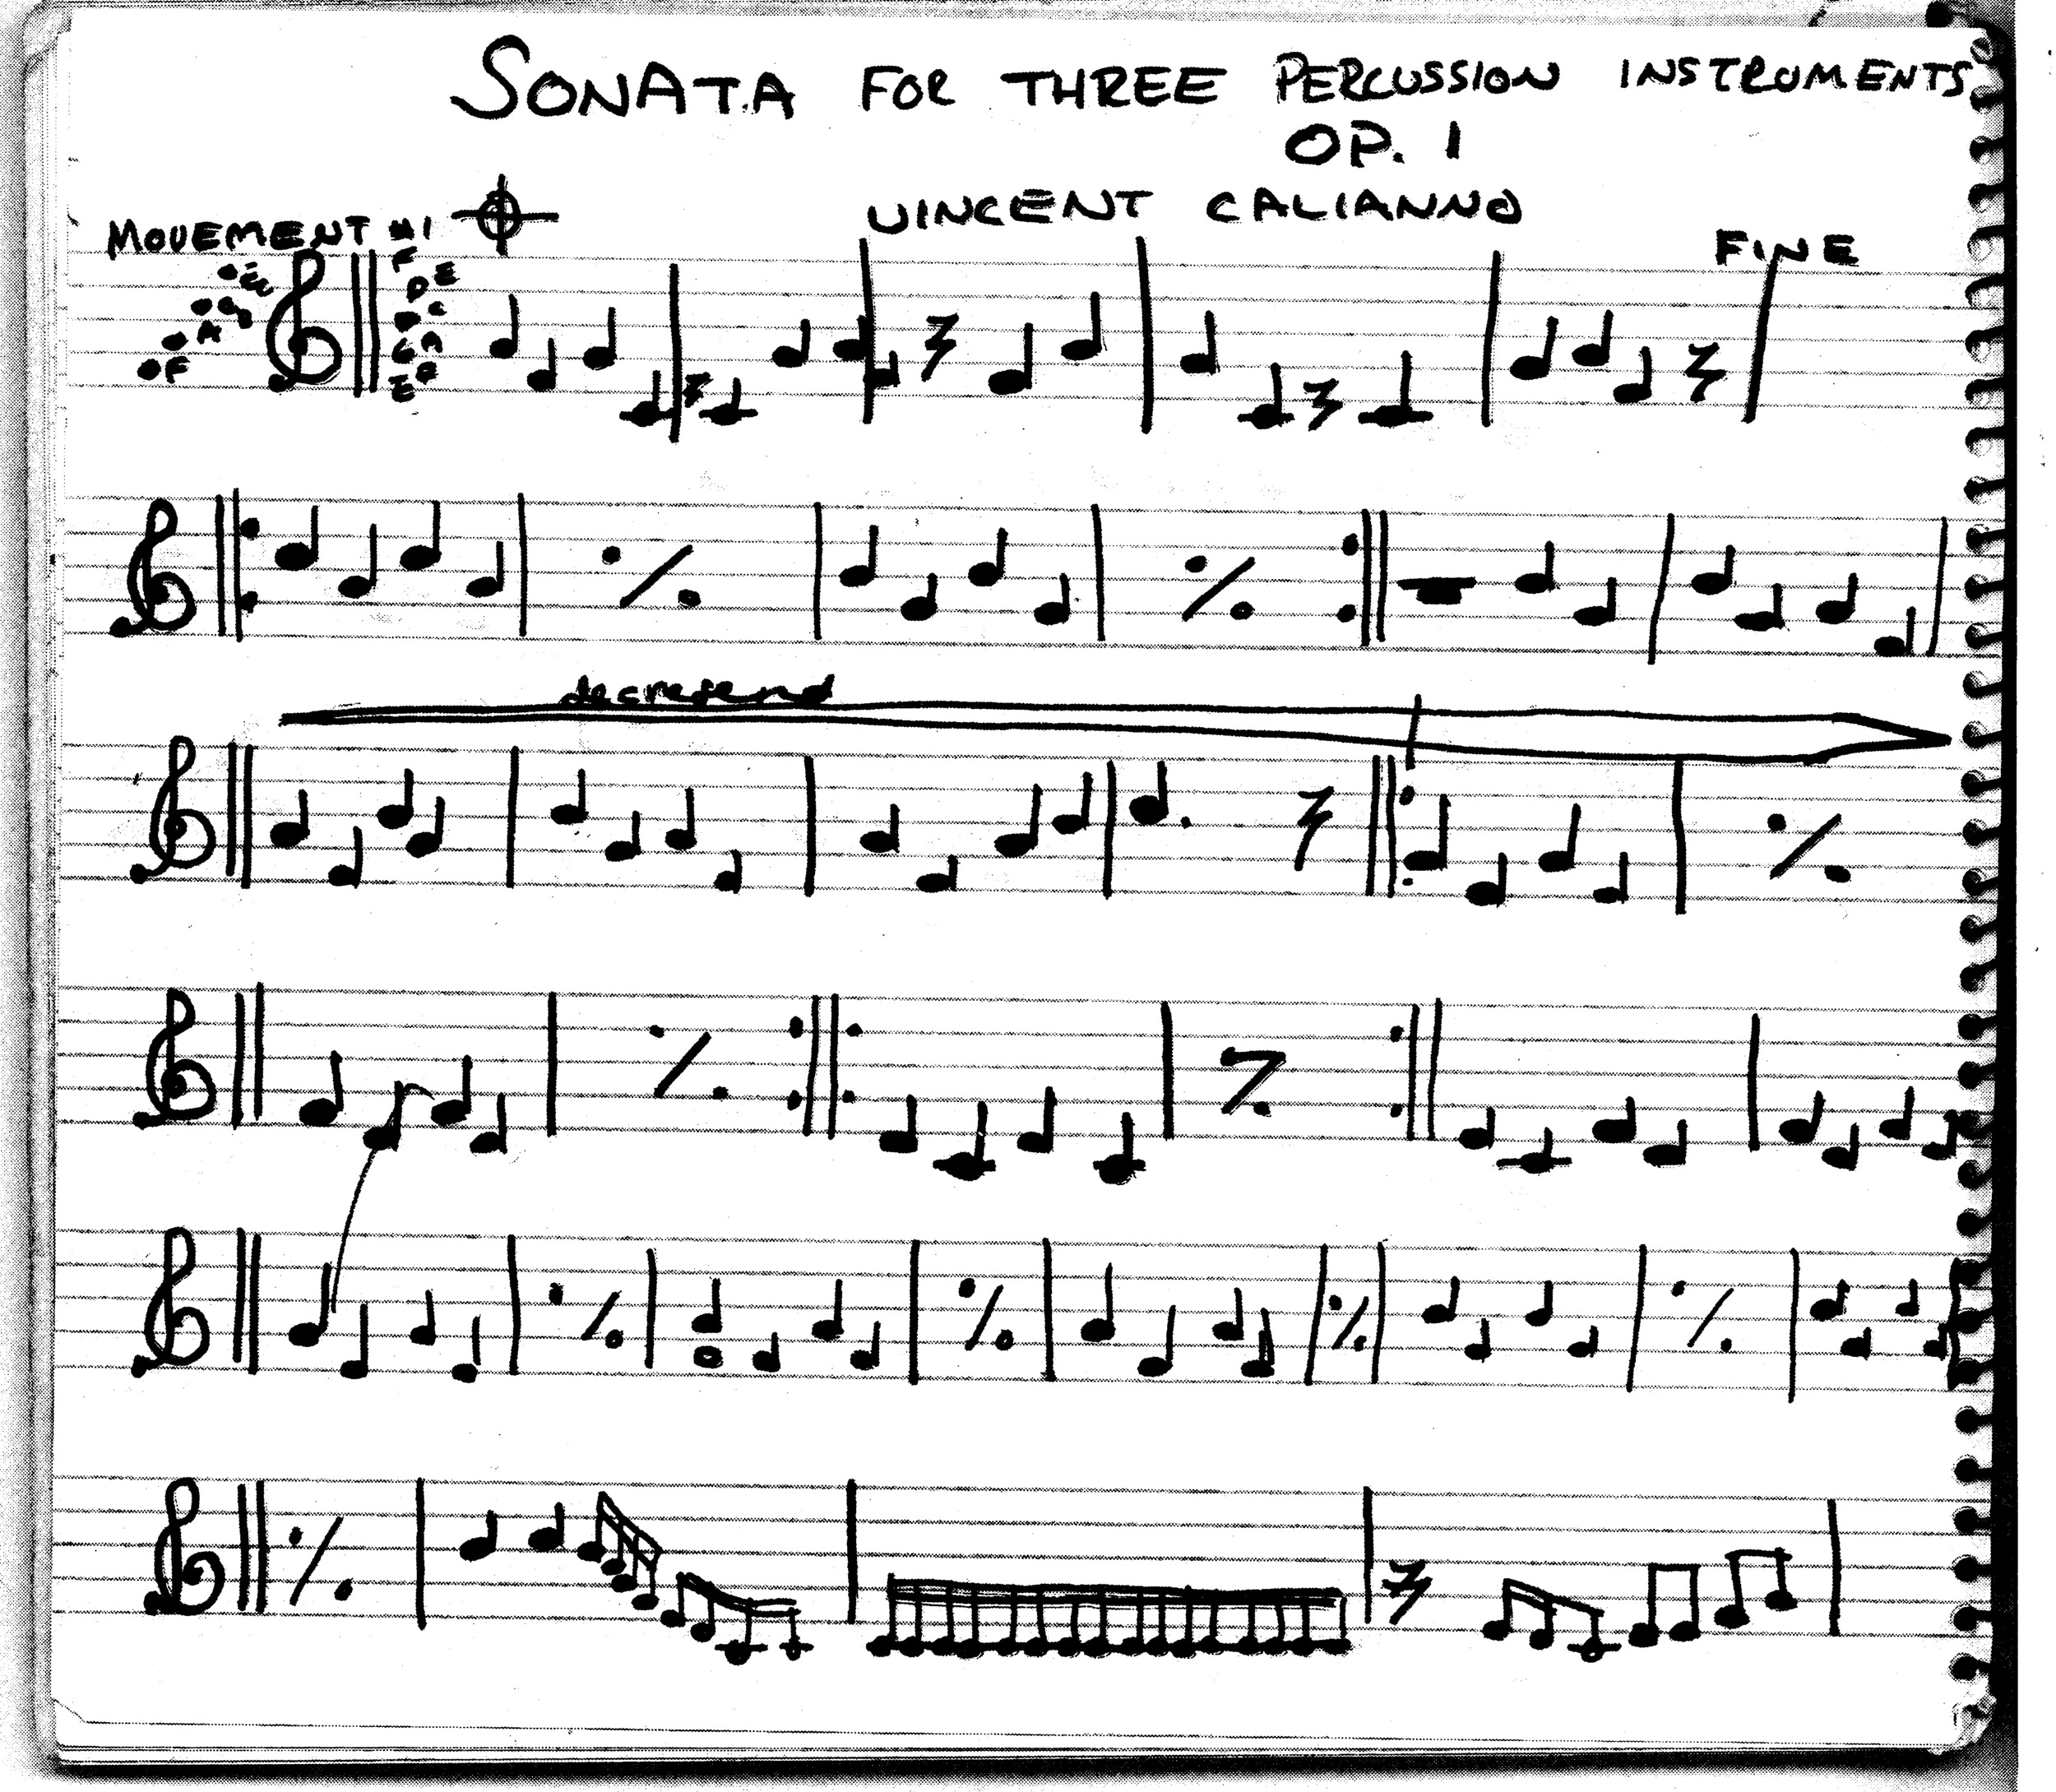 00A - Sonata for Three Percussion Instruments, Op. 1_Page_1.jpg